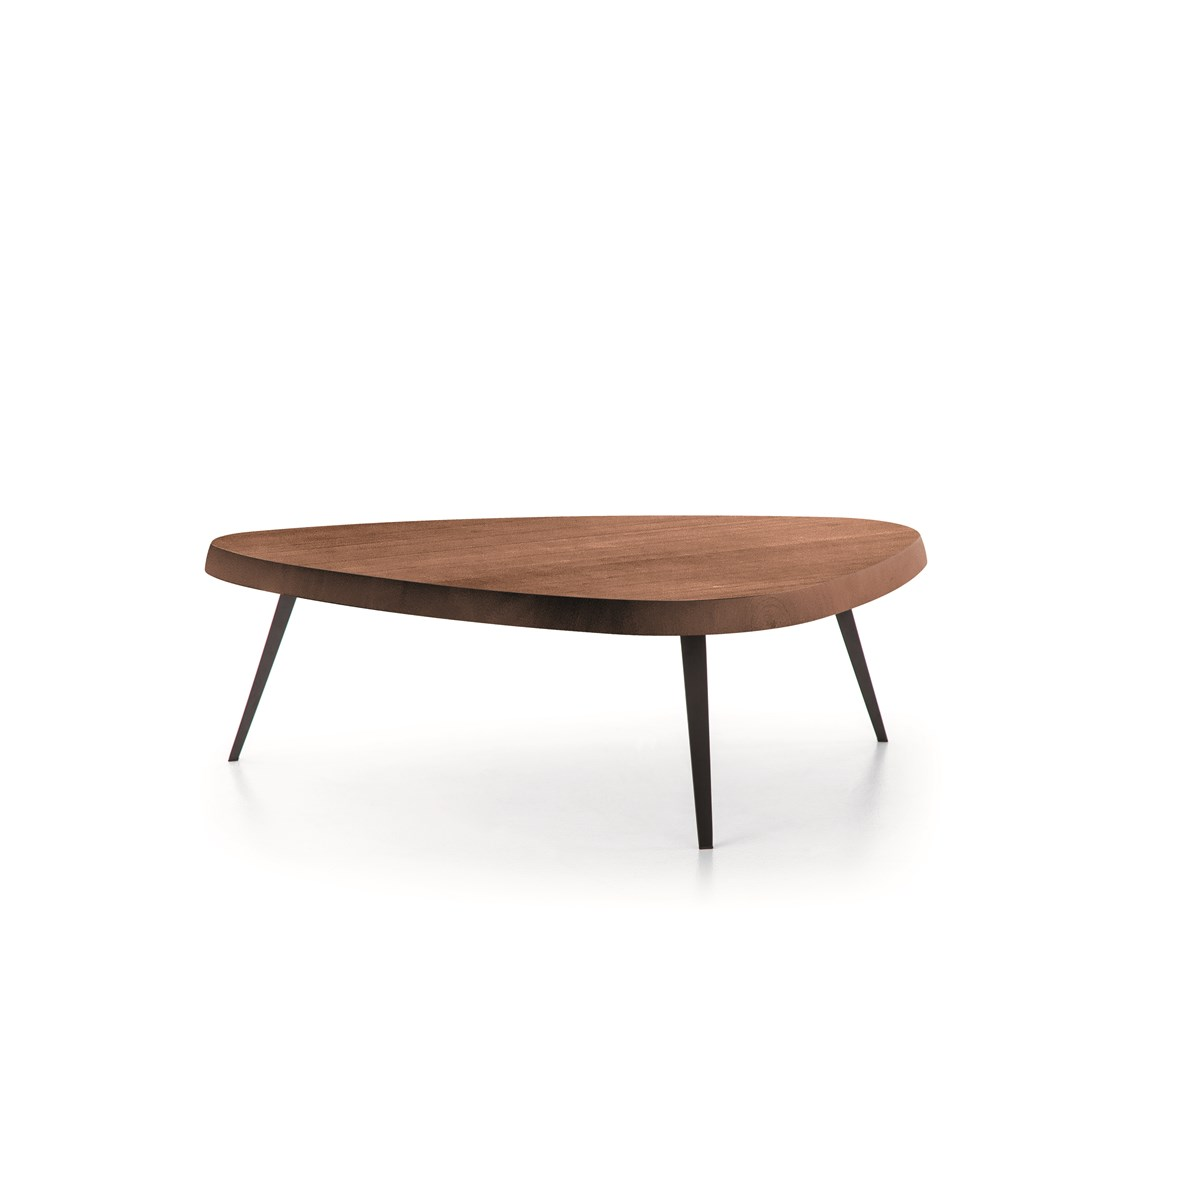 Cassina-Charlotte-Perriand-Mexique-Coffee-Table-Matisse-1